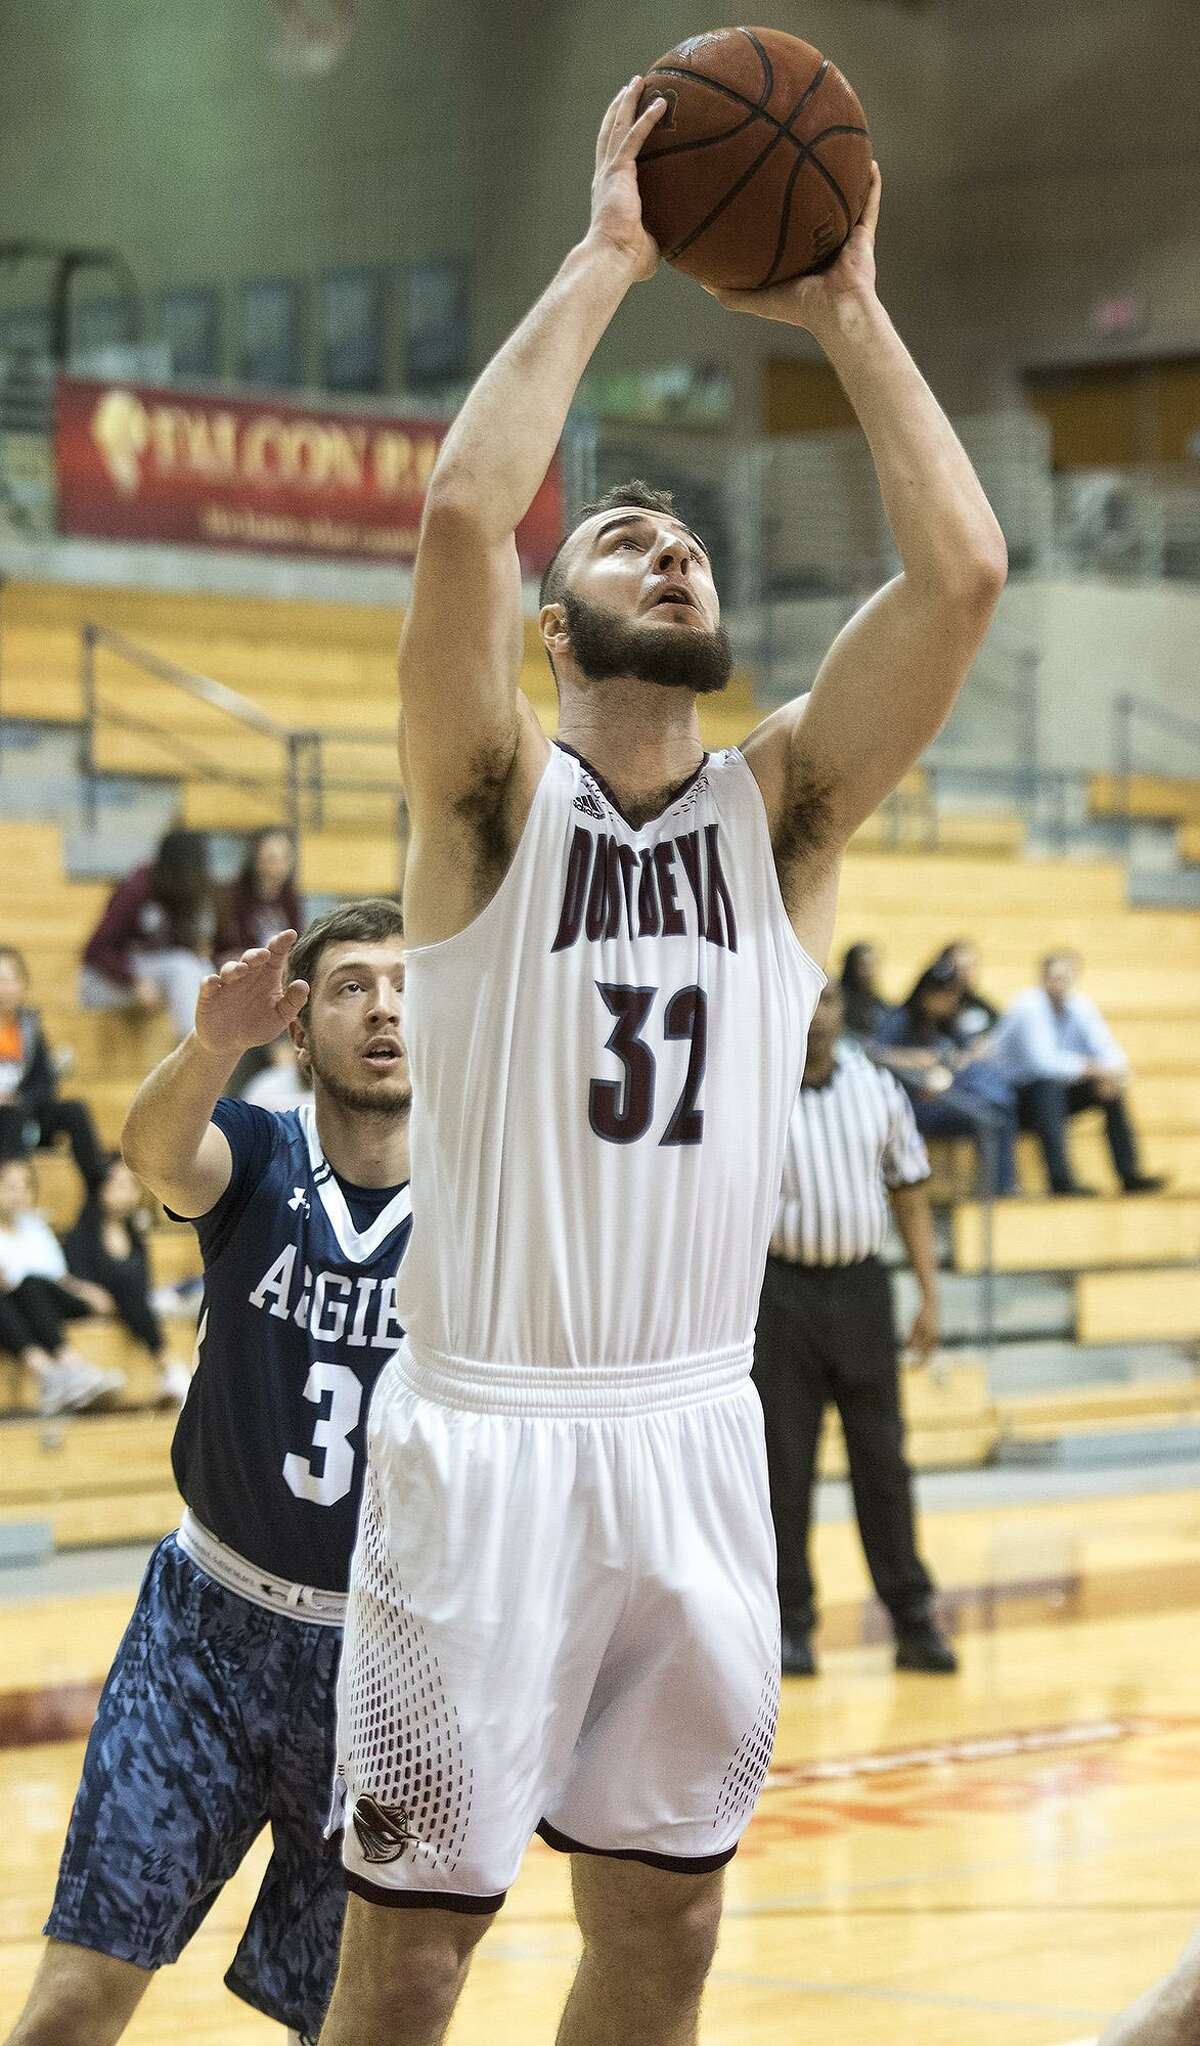 TAMIU's Jordan VanDeKop led the way with 16 points while also picking up seven rebounds and five assists as the Dustdevils downed Oklahoma Panhandle State 76-63 on Saturday.